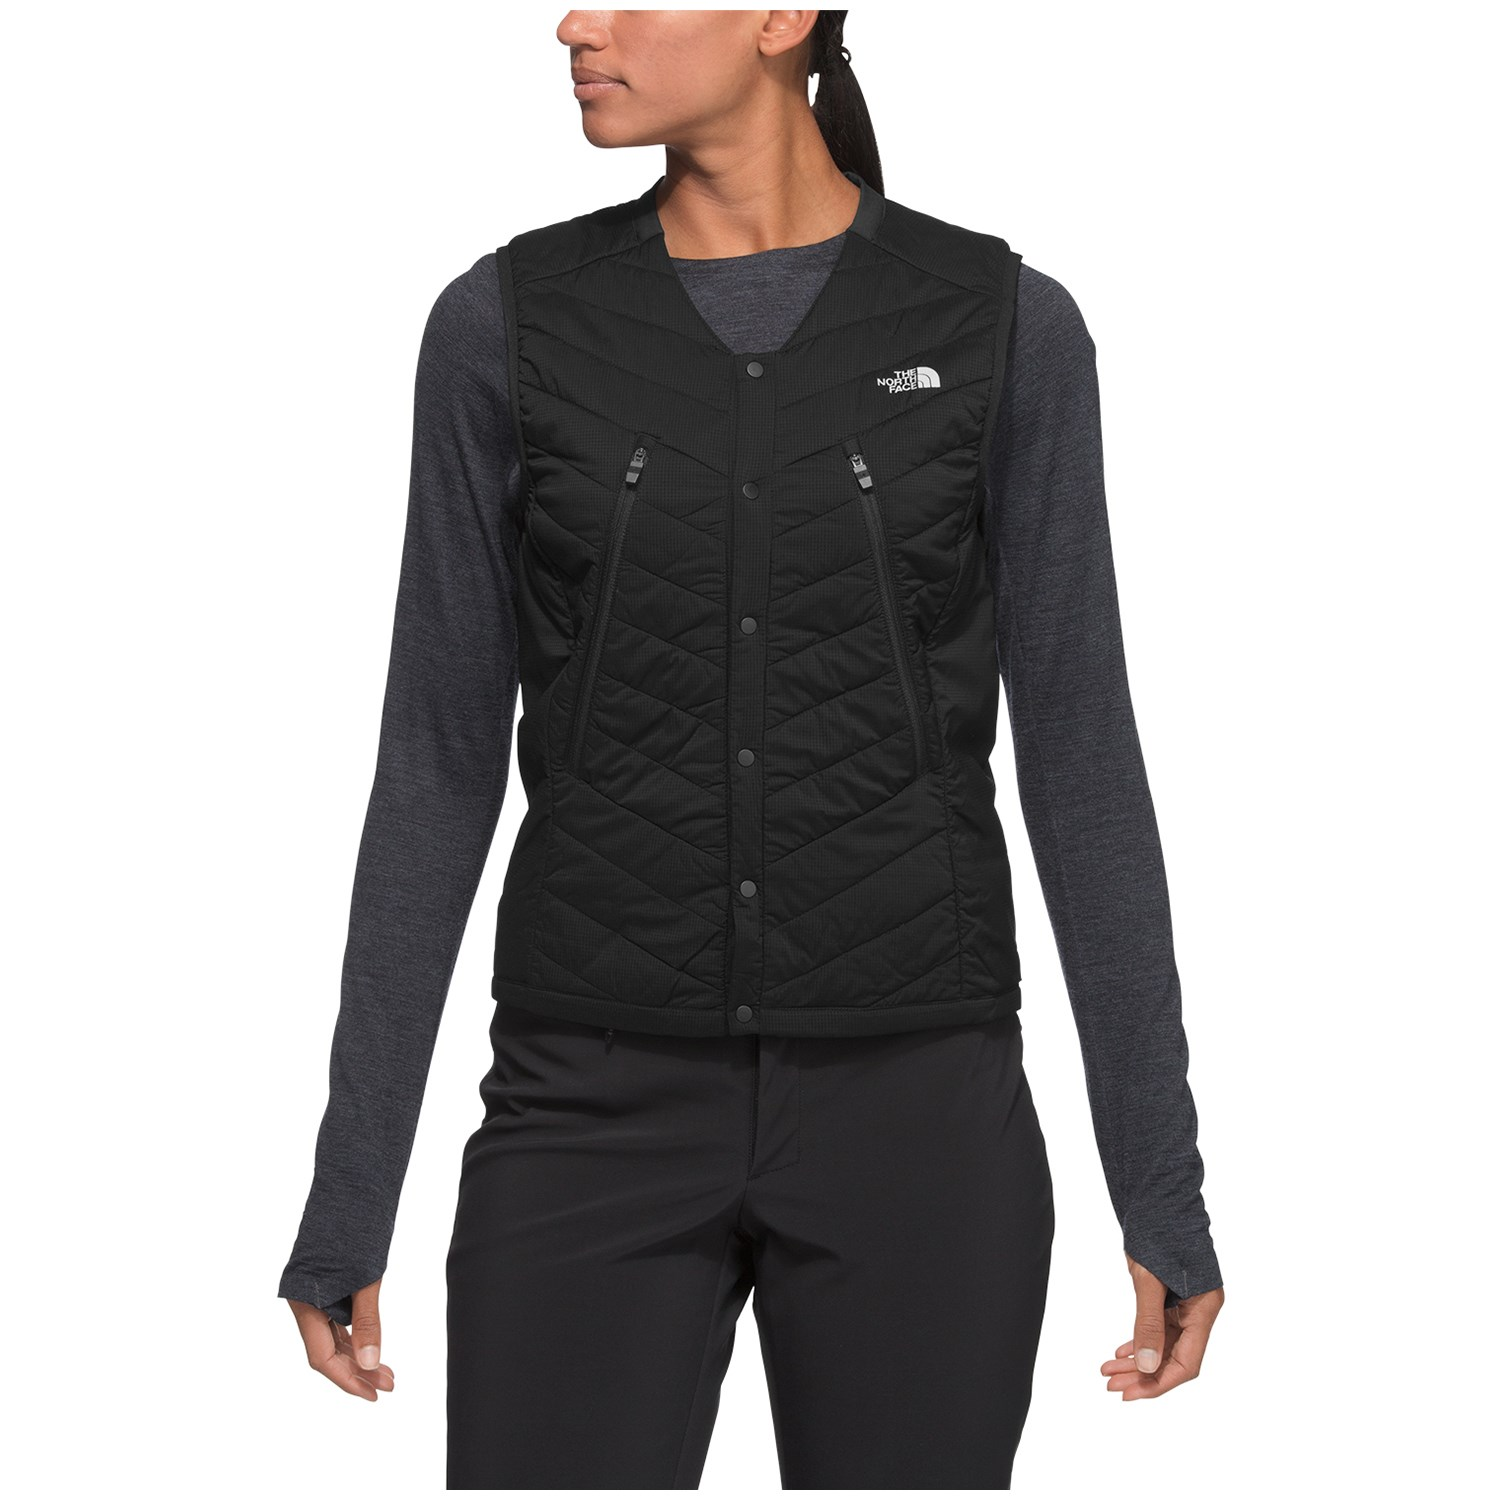 6ce86fa7c76f The North Face Purist Triclimate® Jacket - Women s